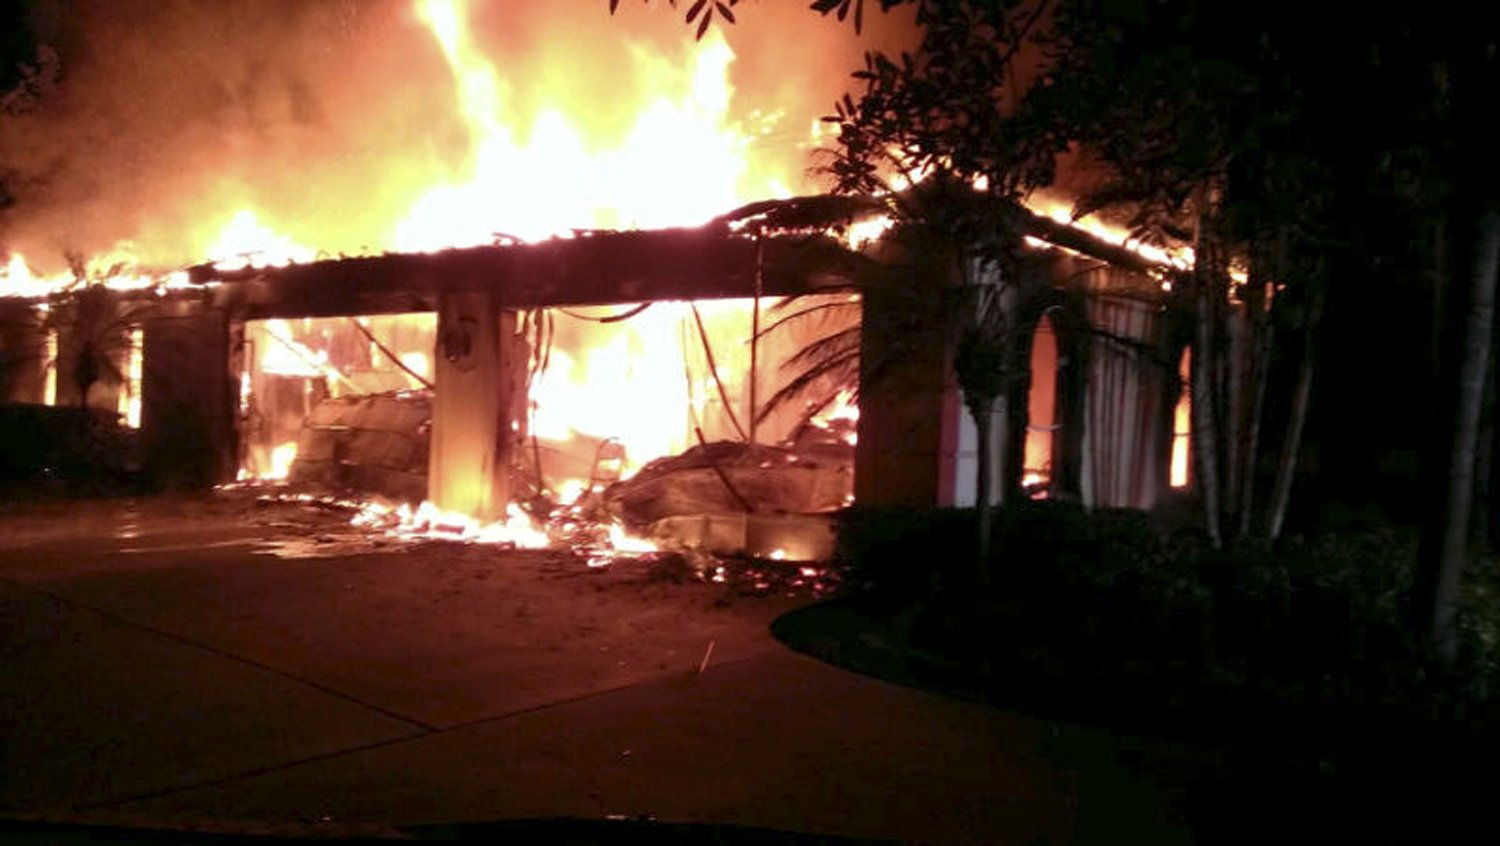 Flames engulf a house owned by former tennis pro James Blake in this photograph provided by the Hillsborough Sheriff's Office in Tampa, Fla. on May 7, 2014.